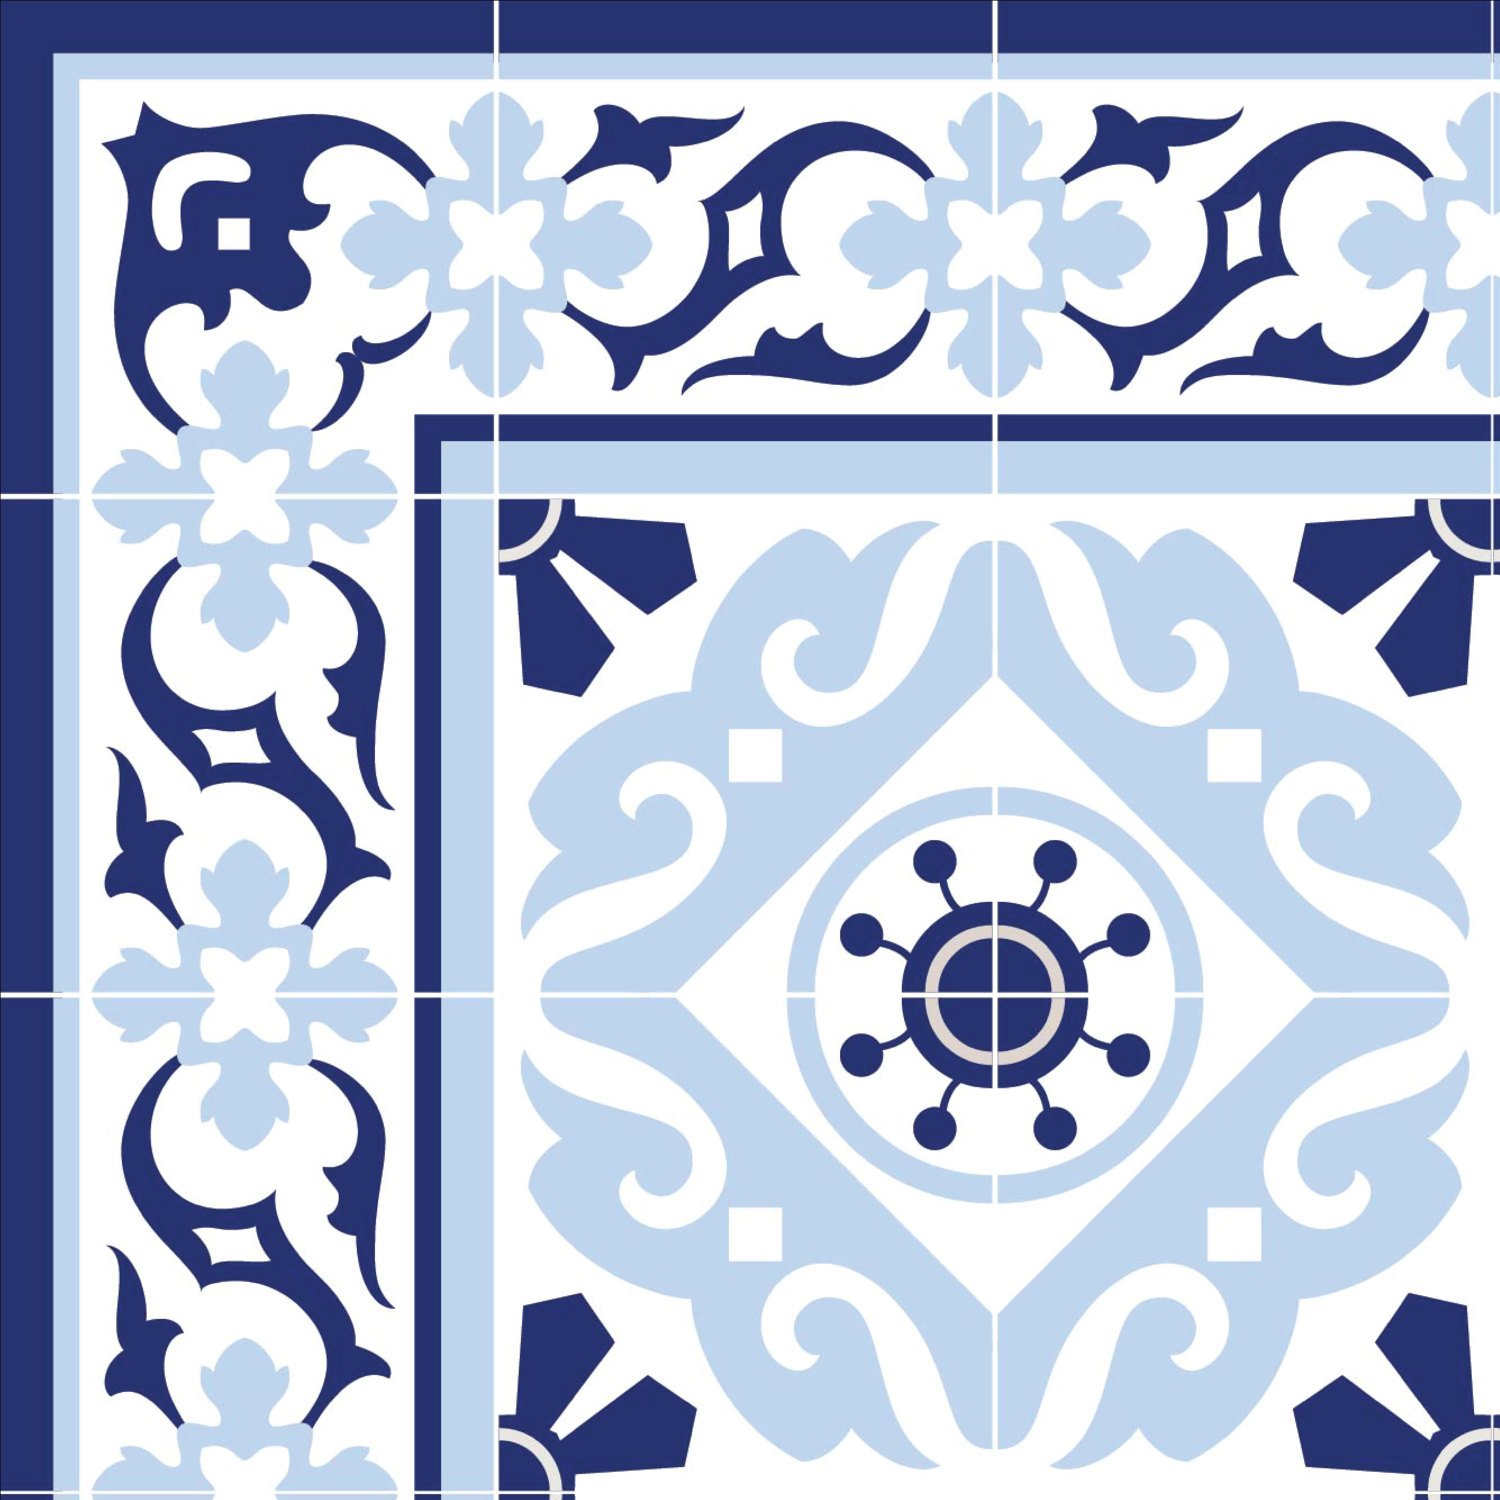 bathroom tiles stickers traditional tiles floor tiles floor vinyl tile 11835 | traditional tiles floor tiles floor vinyl tile stickers tile decals bathroom tile decal kitchen tile decal 213 5bddd374